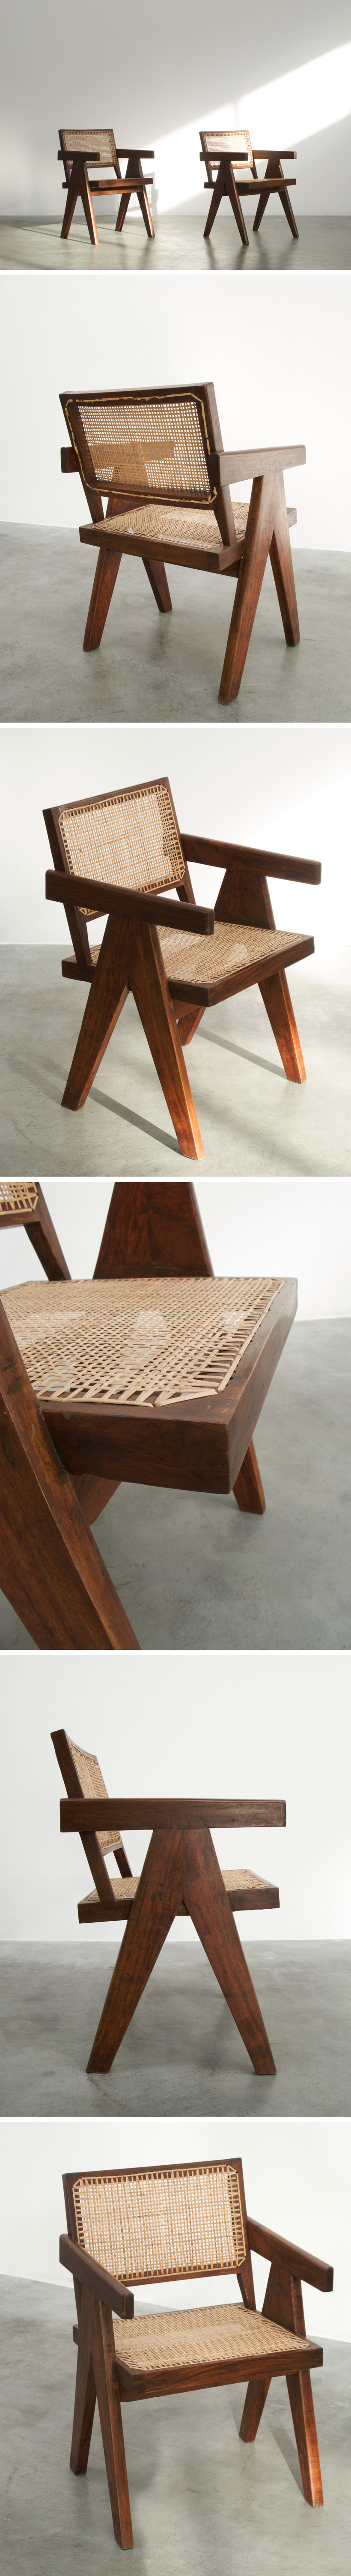 Pierre Jeanneret Armchair Chandigarh India 1955 Large